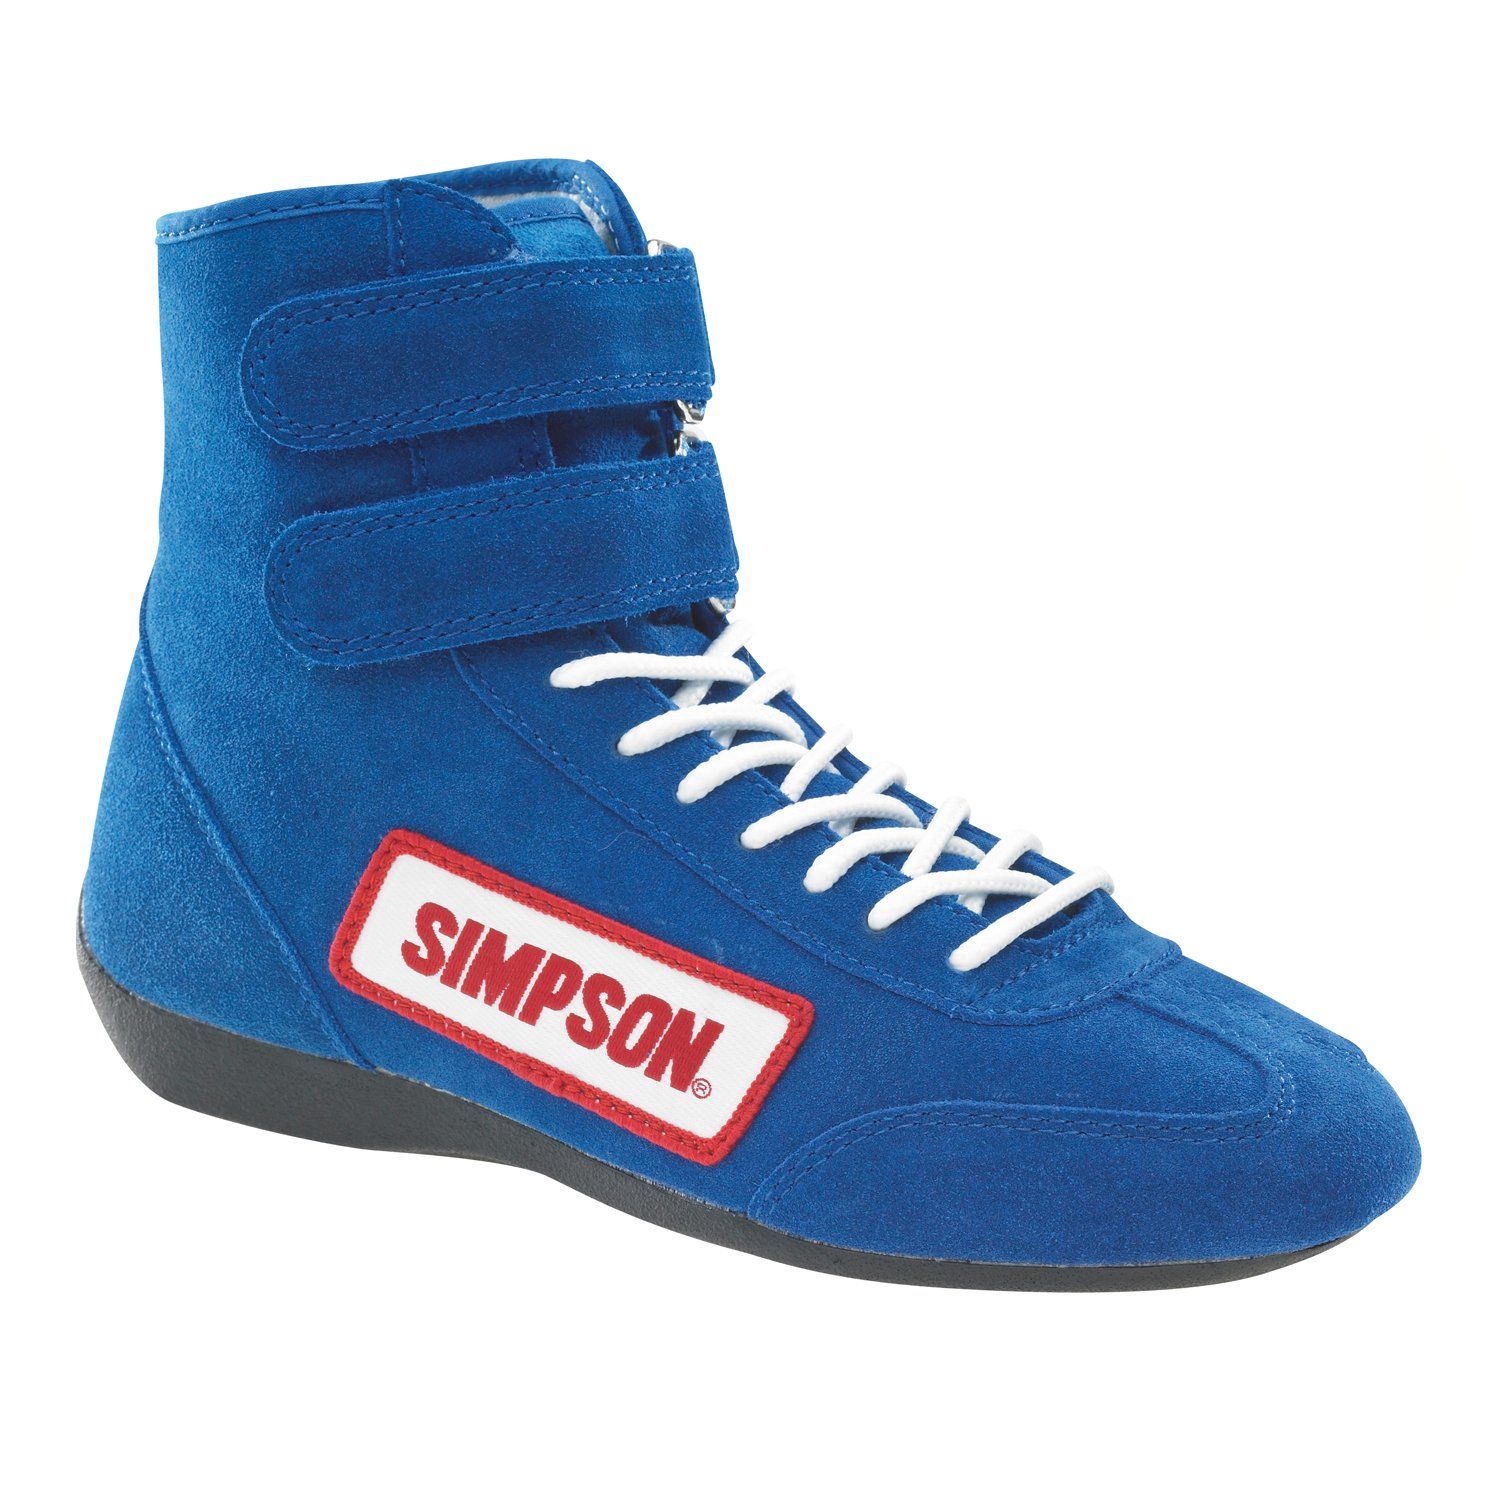 Simpson Racing 28120BK The Hightop Black Size 12 SFI Approved Driving Shoes